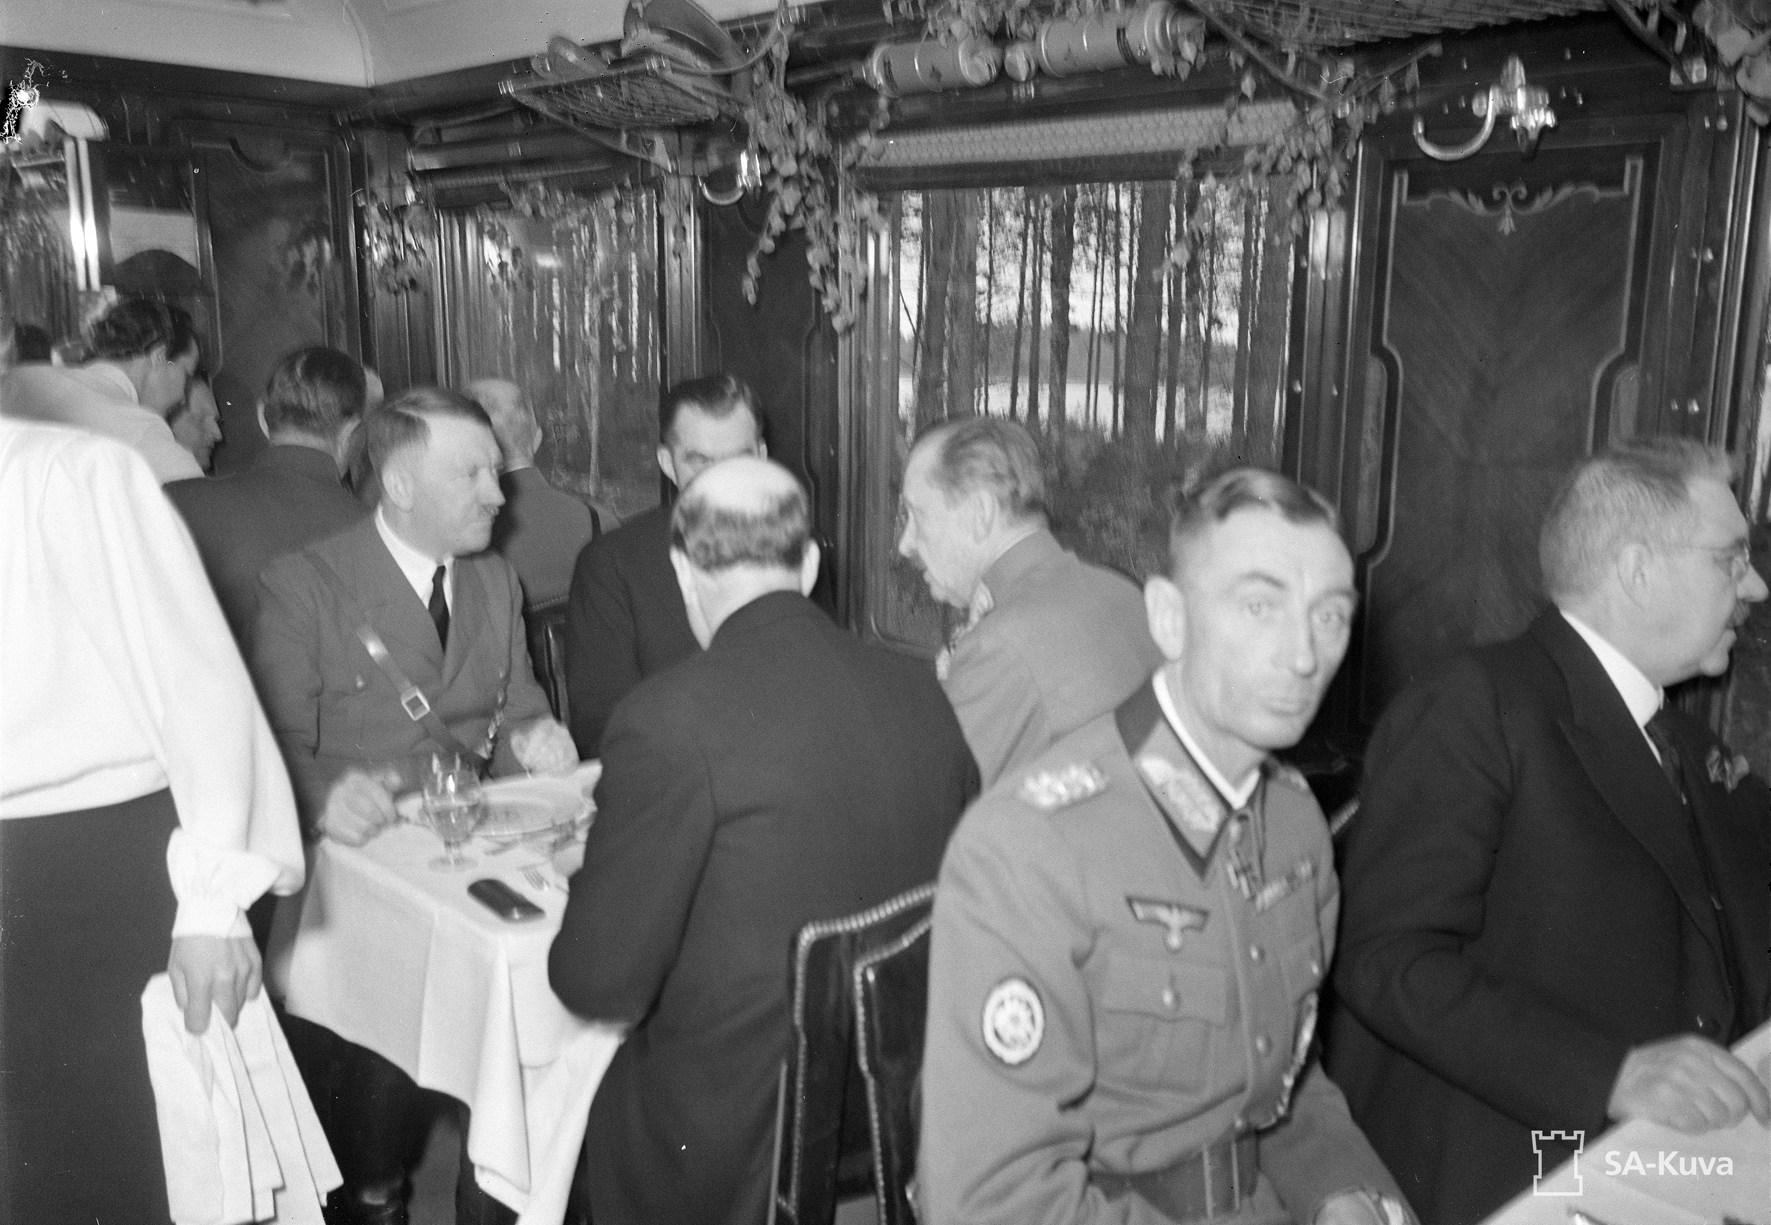 Adolf Hitler dining in the train with Finnish Prime Minister Jukka Rangell, President Risto Ryti and Marshal Carl Gustav Mannerheim